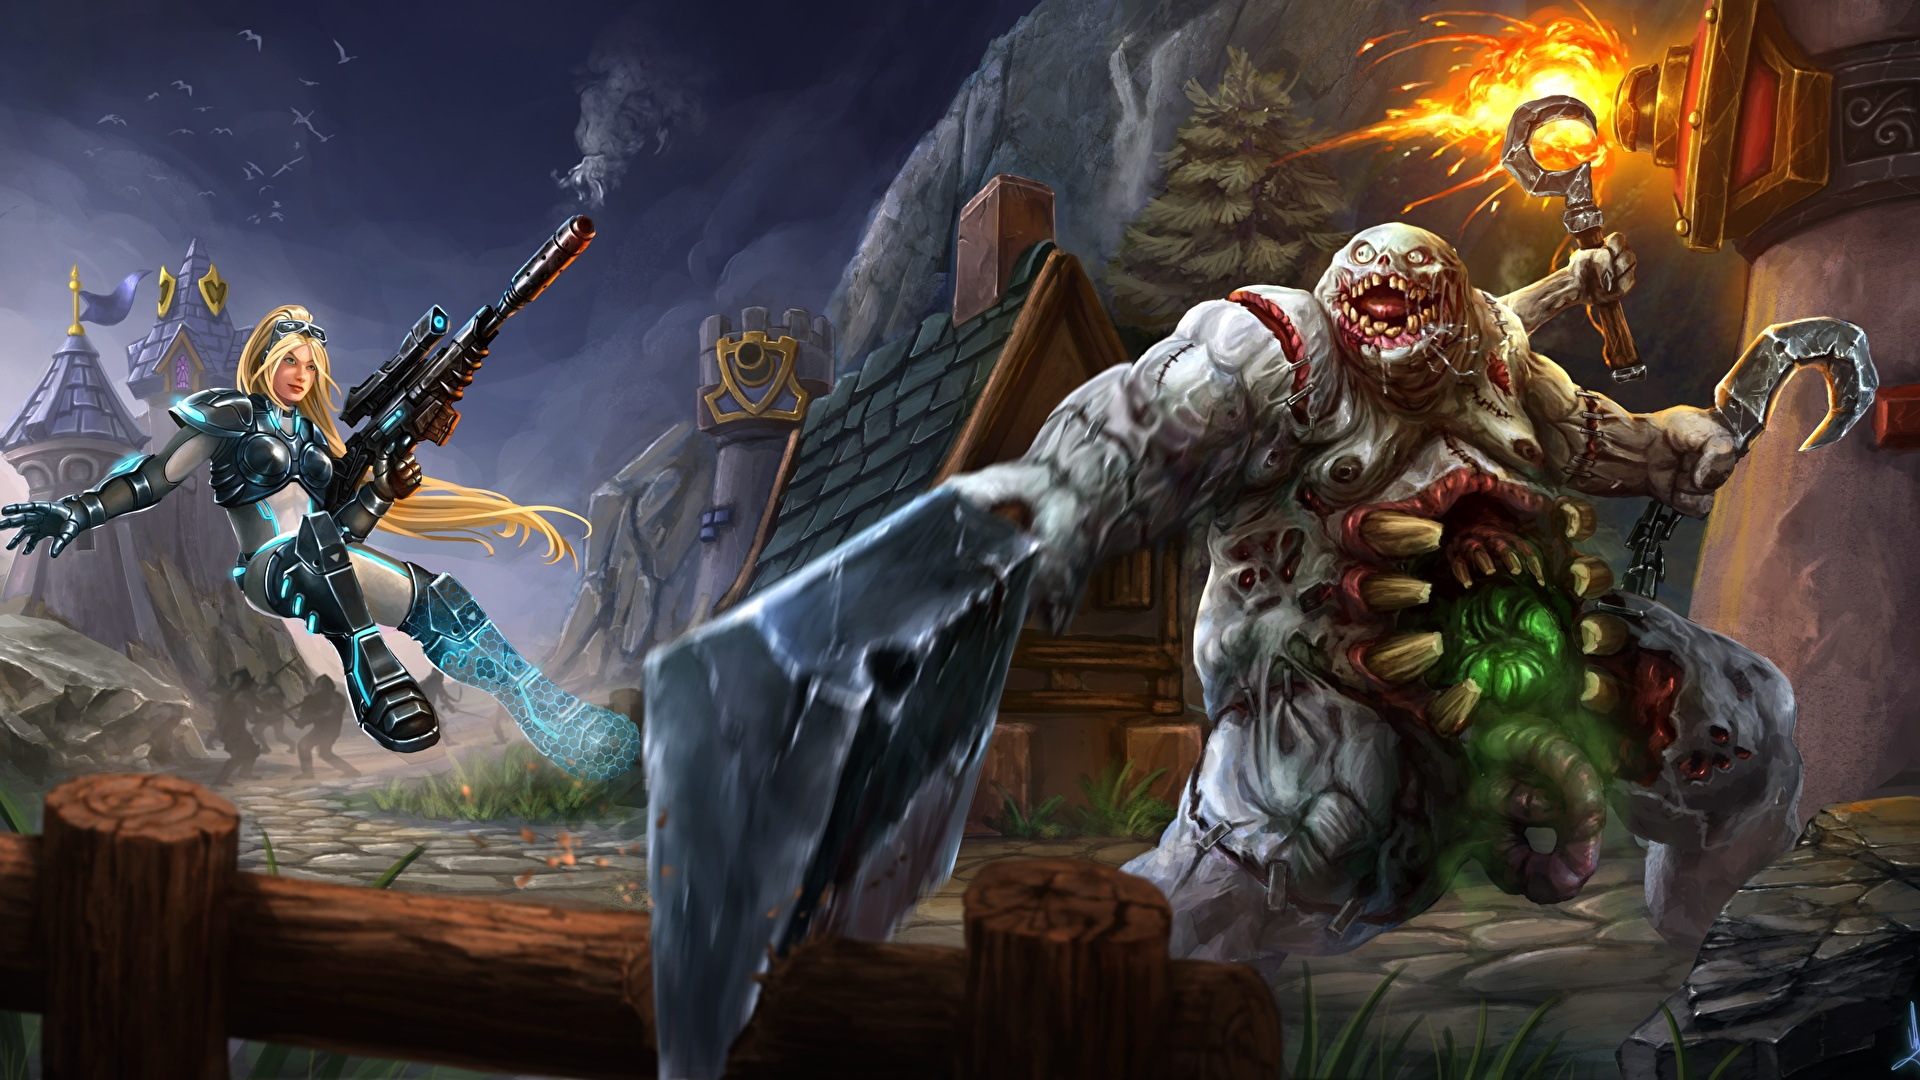 Image Monster Warriors Heroes Of The Storm Stitches 1920x1080